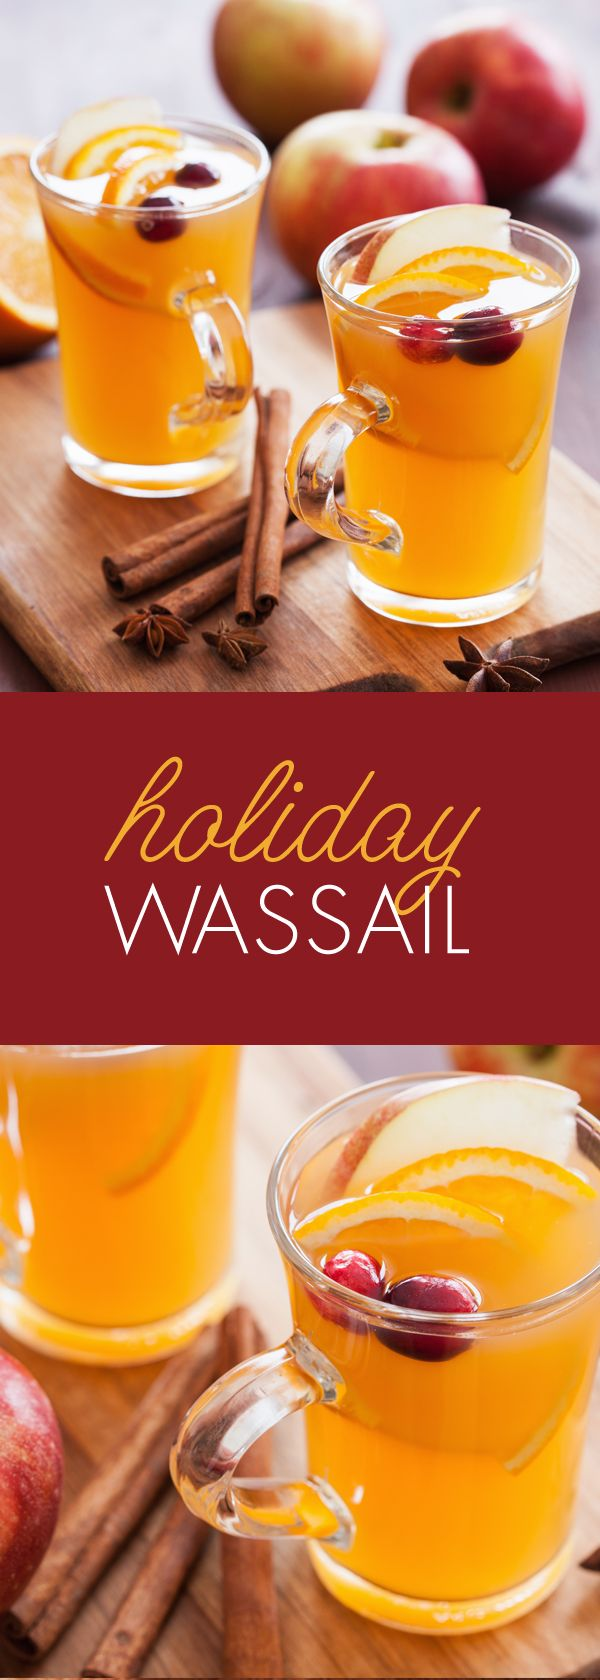 Shop By Category Ebay Wassail Holiday Drinks Holiday Recipes